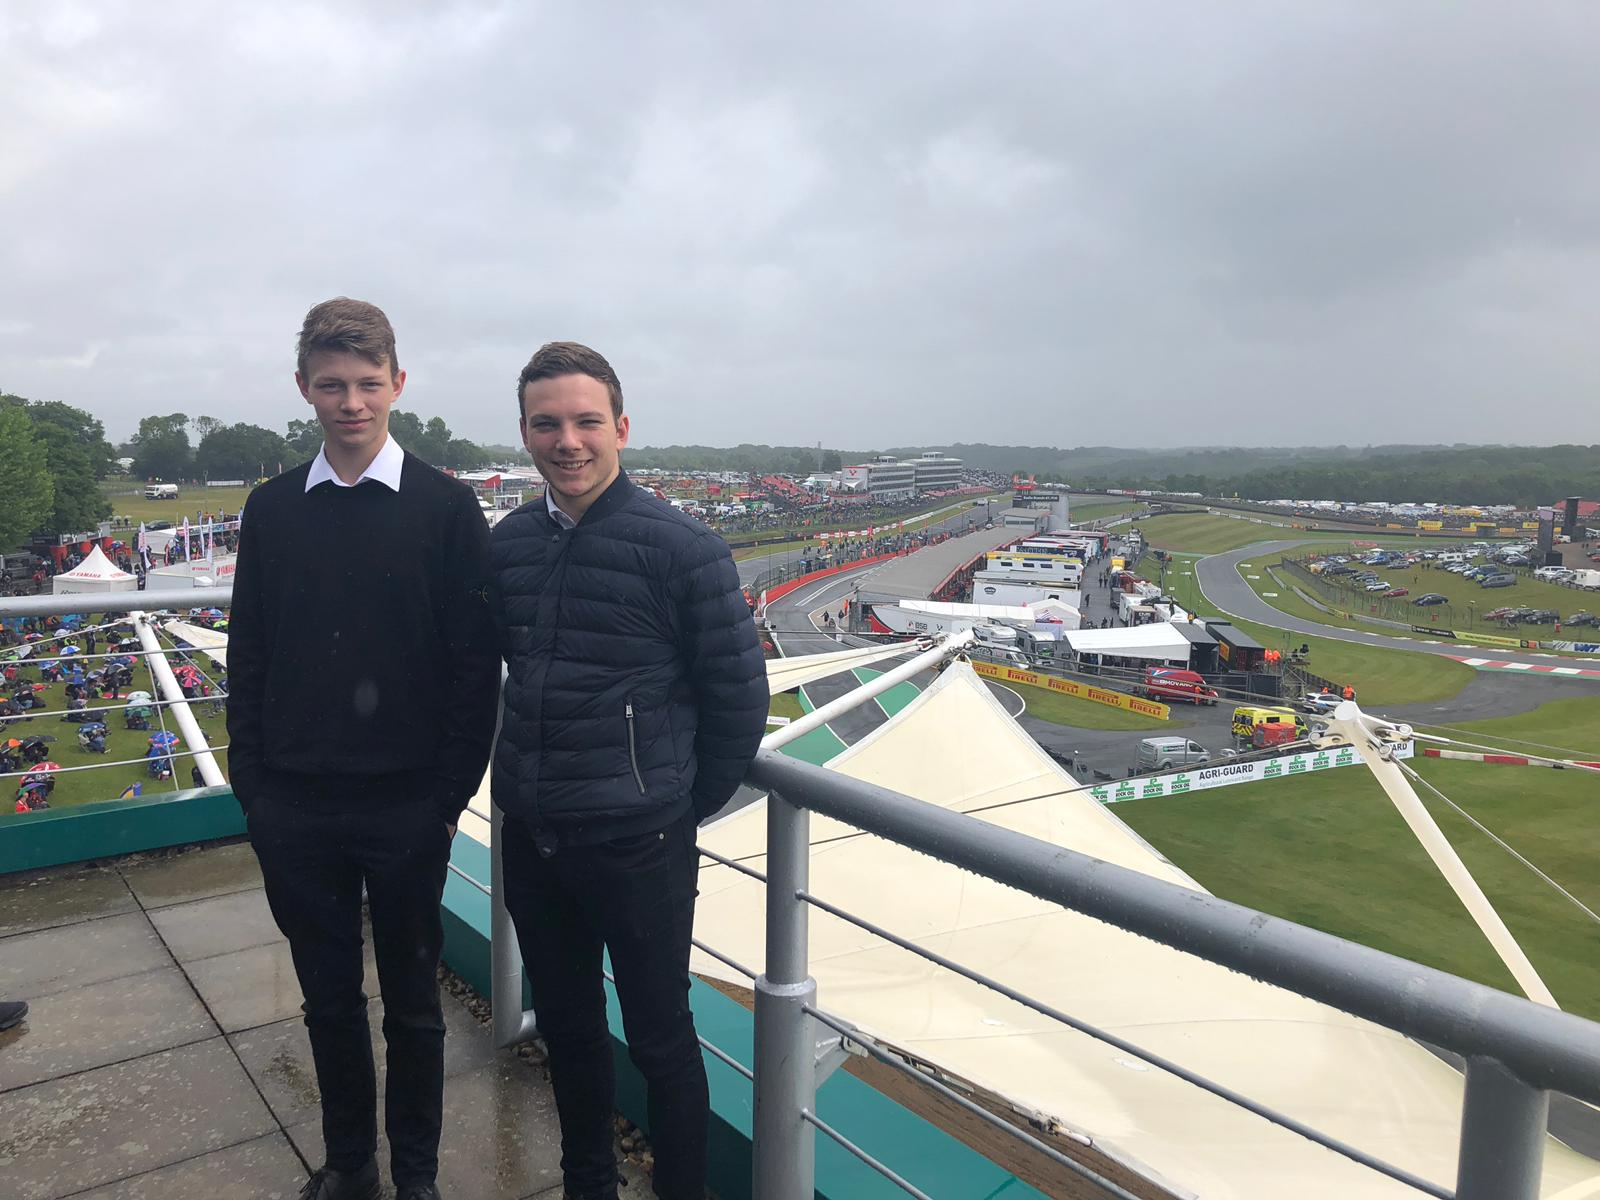 On A Rewards Day, They Can Even Take Their Best Friend!  How about this trip to the world famous racing track to experience some fine dinning and some great racing!  Everyone had a fantastic time.. Well done lads!